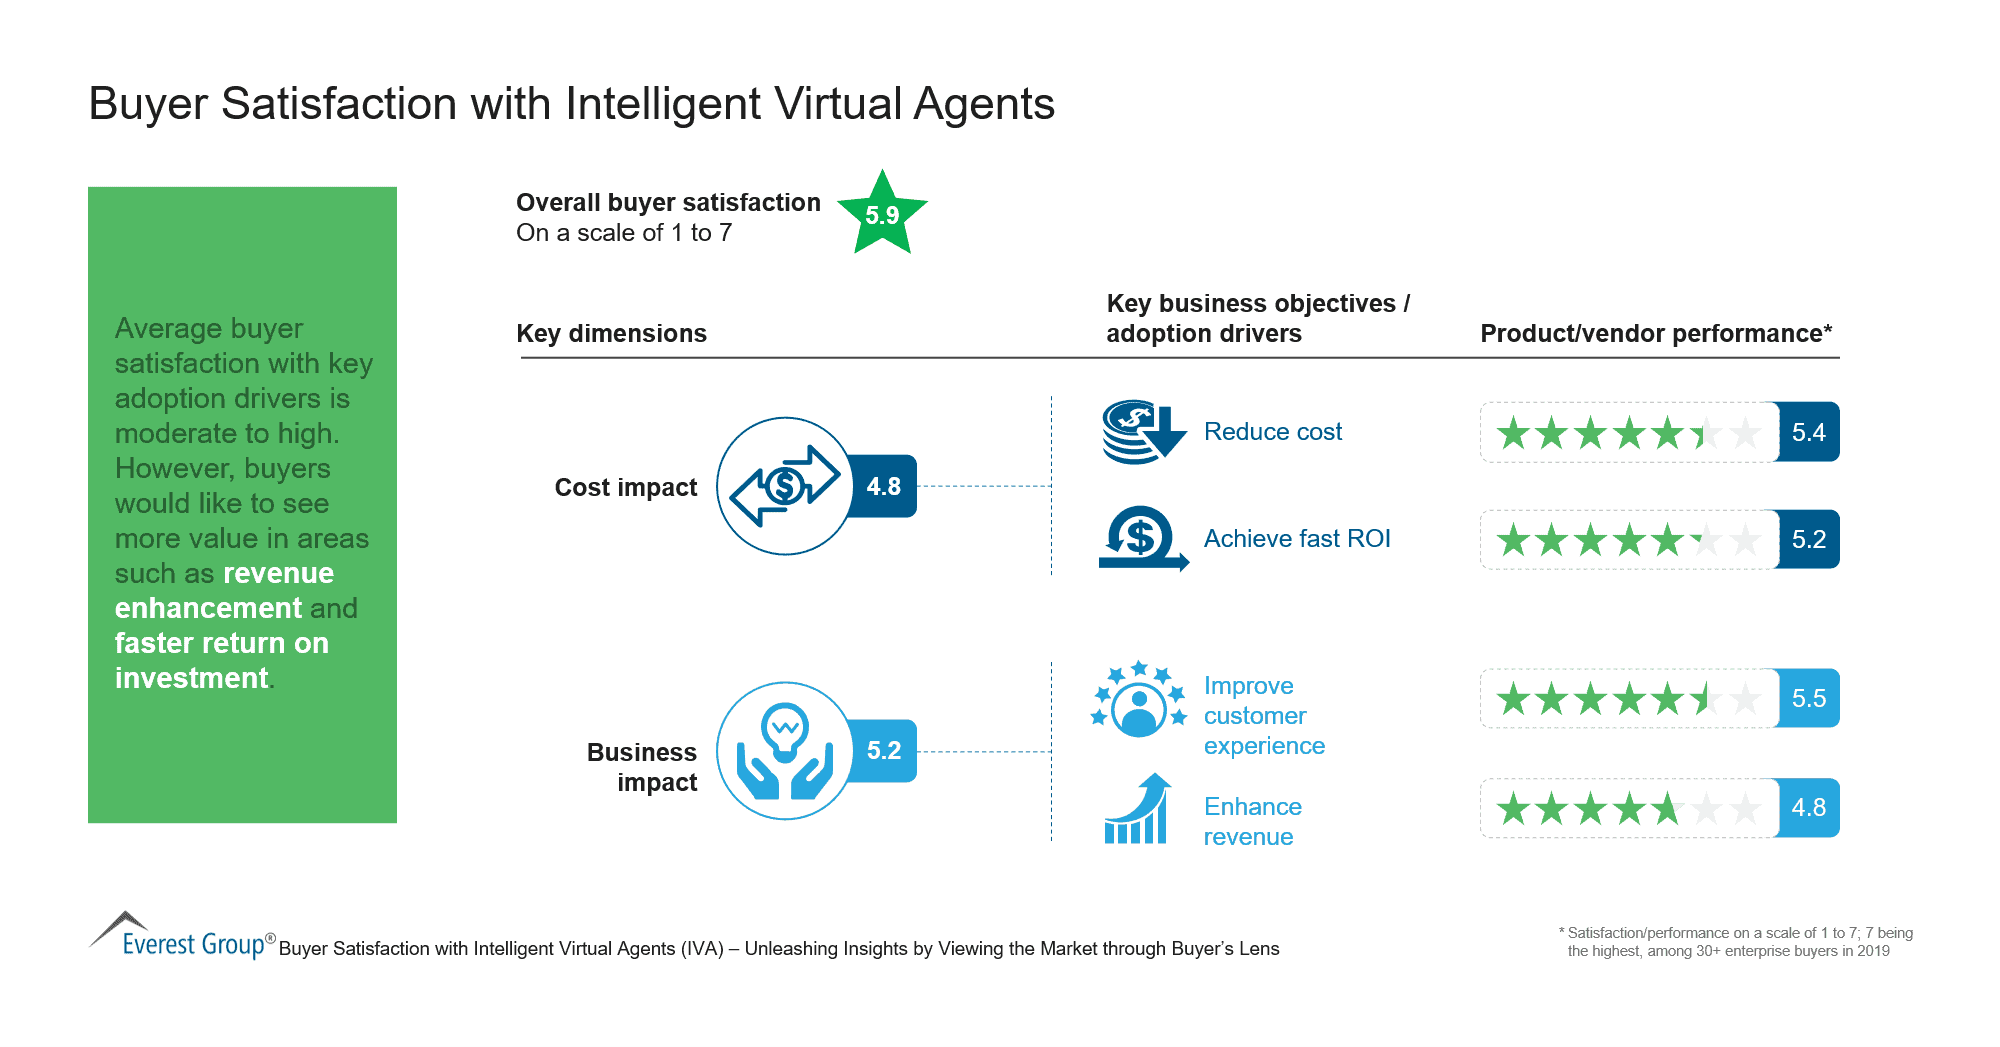 Buyer Satisfaction with Intelligent Virtual Agents